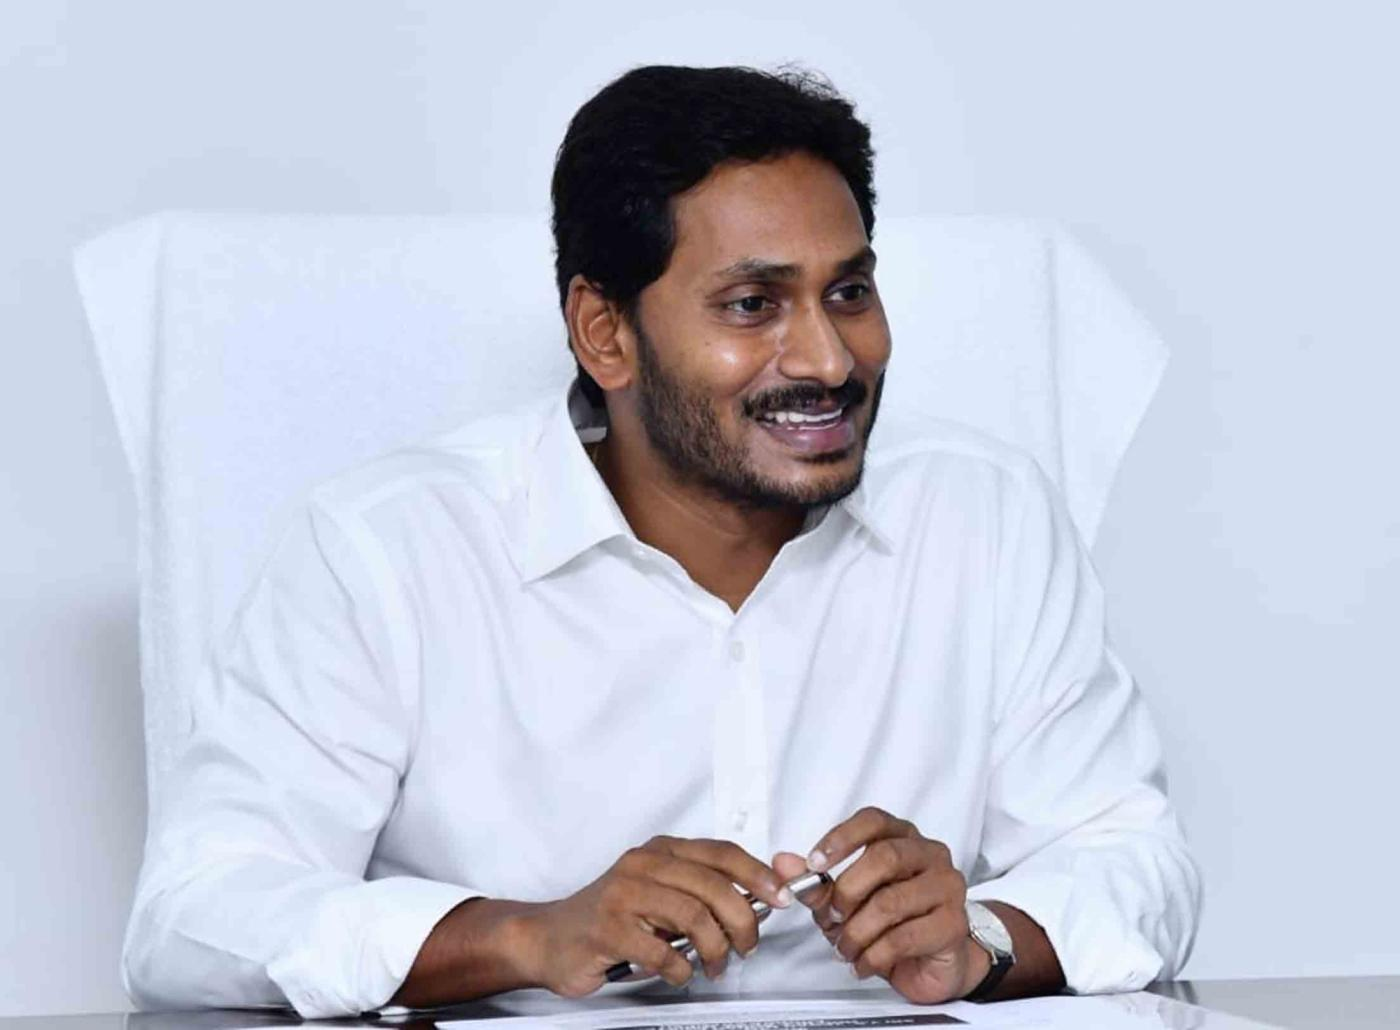 Amravathi: Andhra Pradesh Chief Minister Y. S. Jagan Mohan Reddy chairs a review meeting with the Finance and Revenue Department, in Amravathi on June 1, 2019. (Photo: IANS) by .